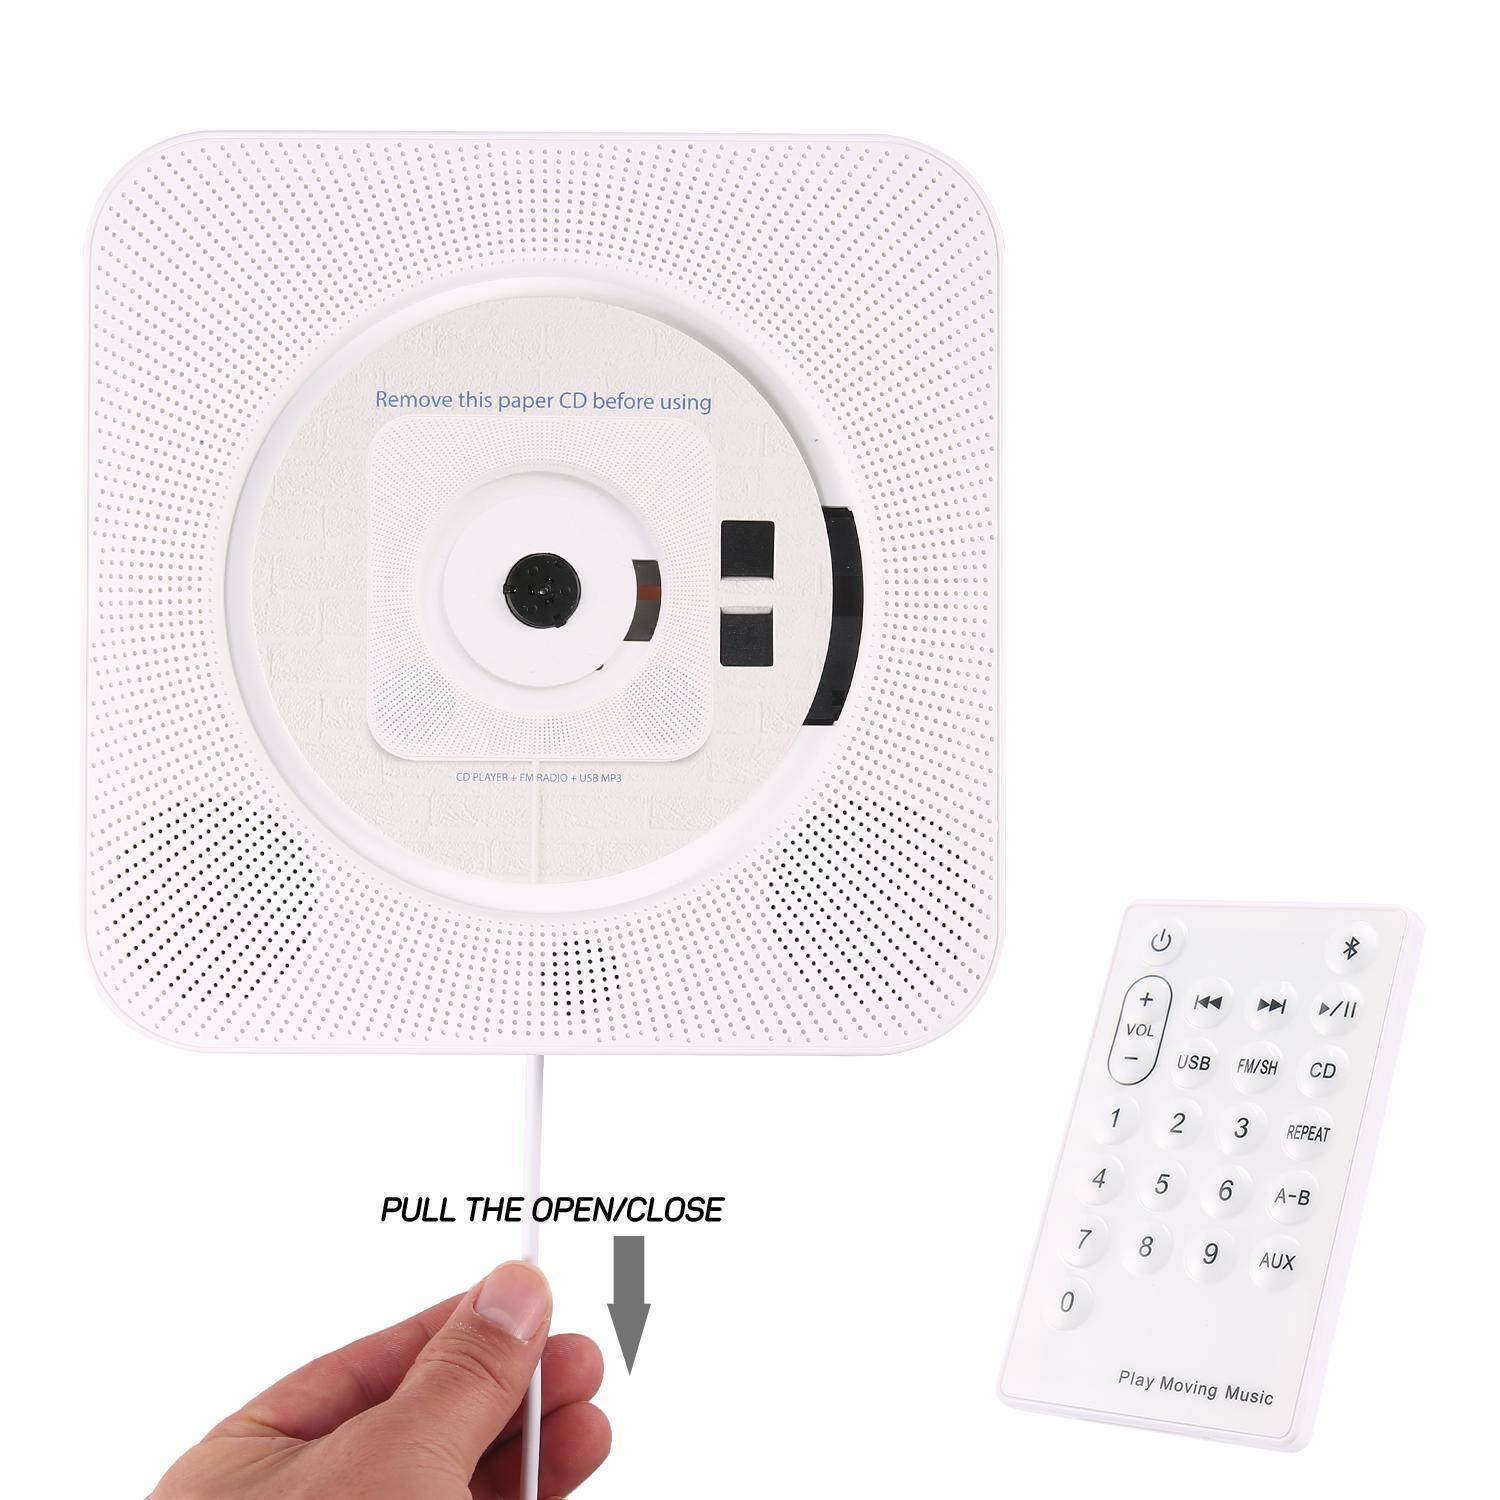 Kobwa Mini Cd Player Wall Mount Portable Speaker Music Playing Home Repeater Education Early Learning English Remote Control Bluetooth Cd Player Radio Built-In Hifi Speaker Mp3 Aux Input And Output - Intl By Kobwa Direct.